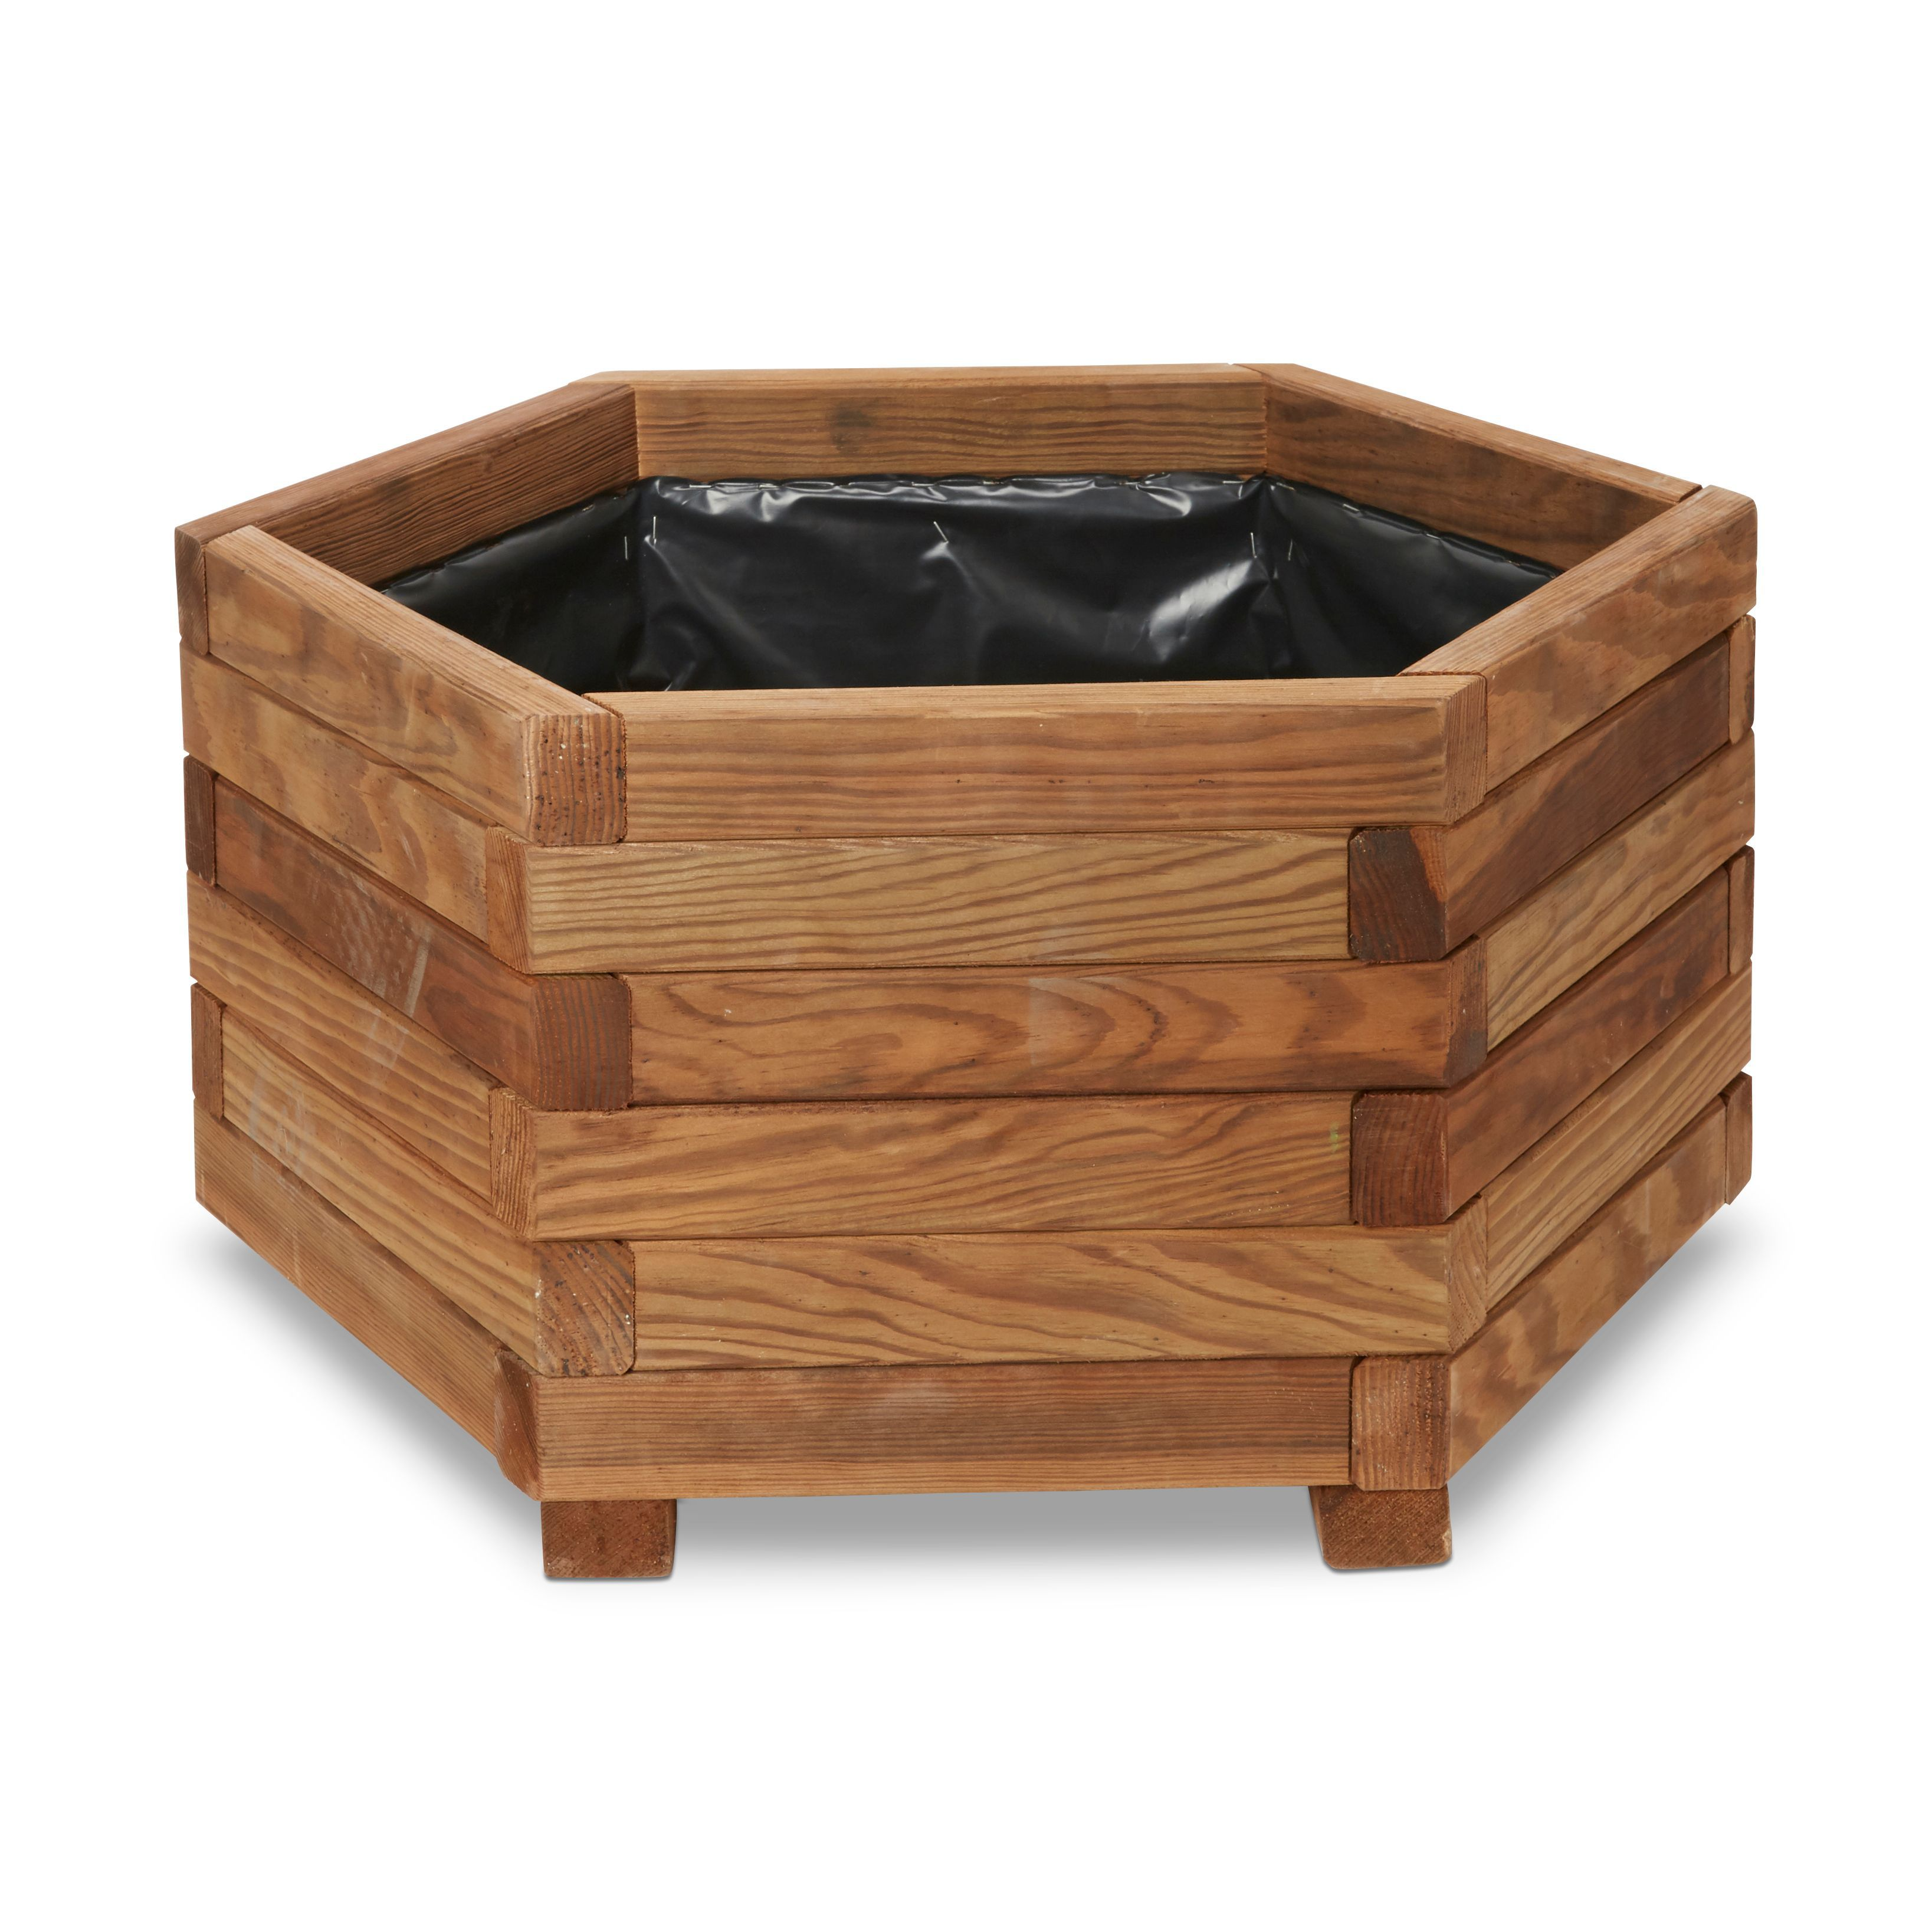 Bopha Hexagonal Wooden Planter H 300mm Dia 600mm